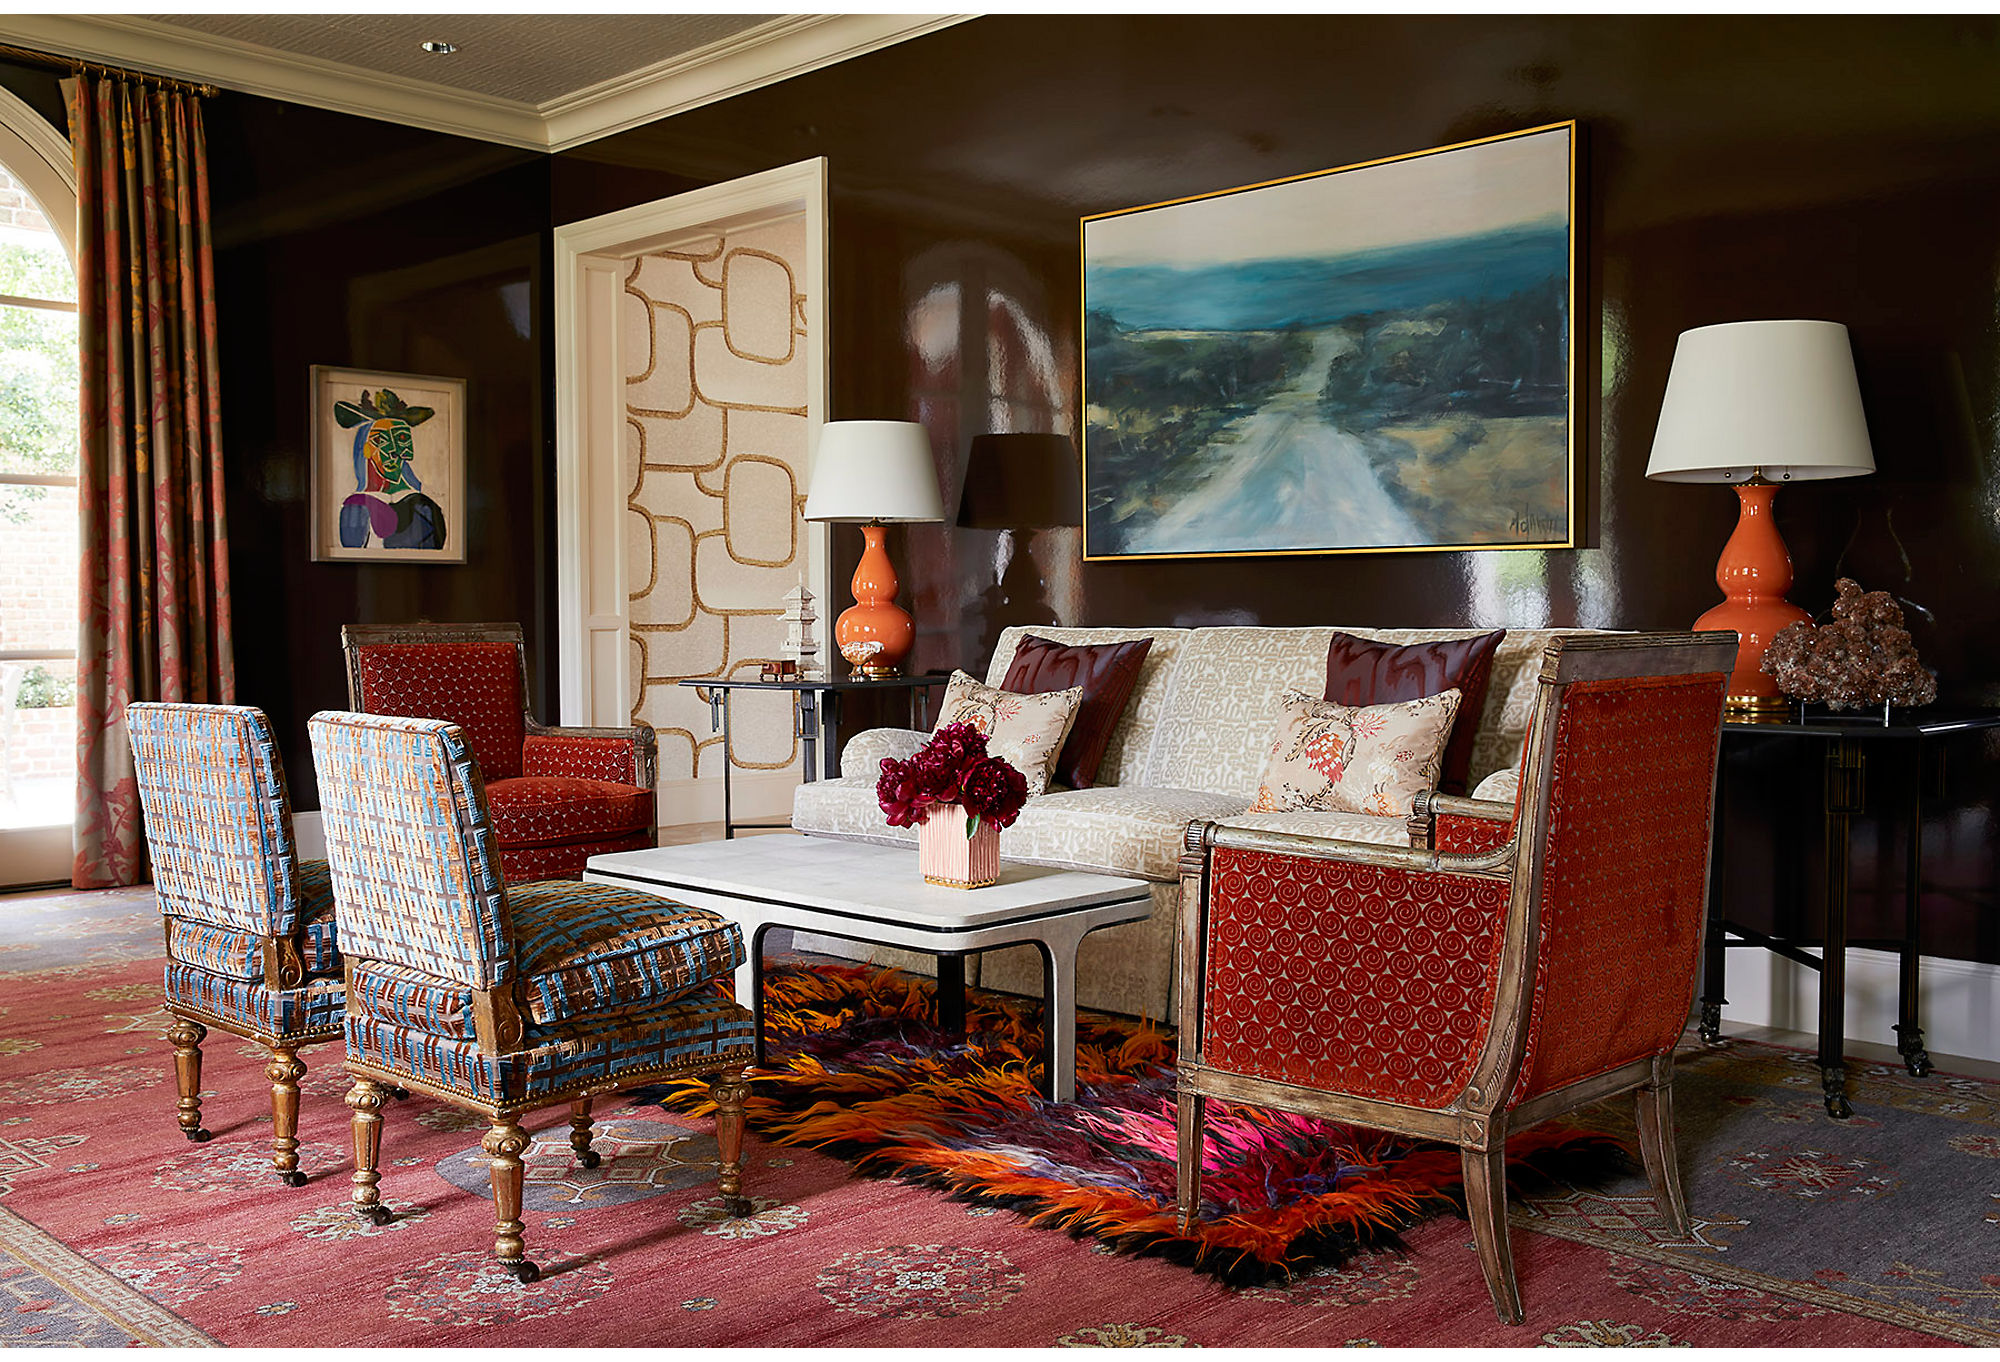 Dennis's choice to mix eras and styles keeps the room interesting at every turn. Layering a wild shag carpet over anOriental rug exemplifies his maximalist nature.